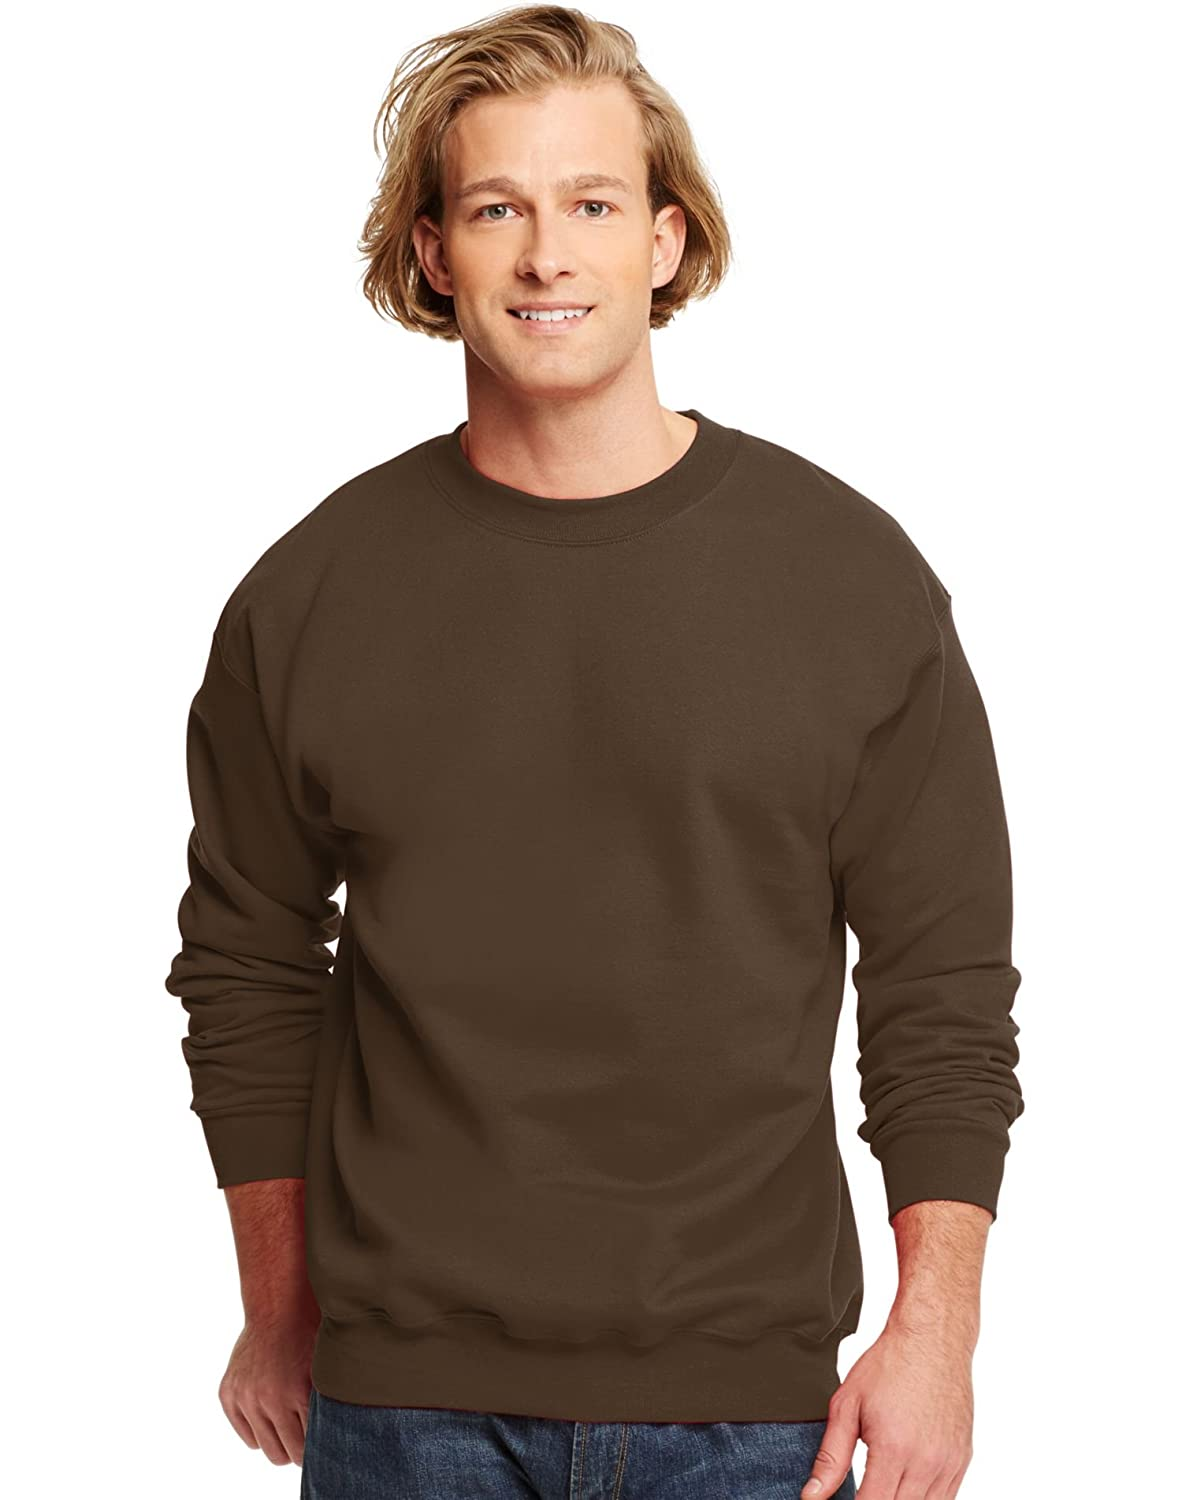 Hanes 90//10 Cotton//Poly 10 oz Ultimate Crew Sweatshirt in Dark Chocolate